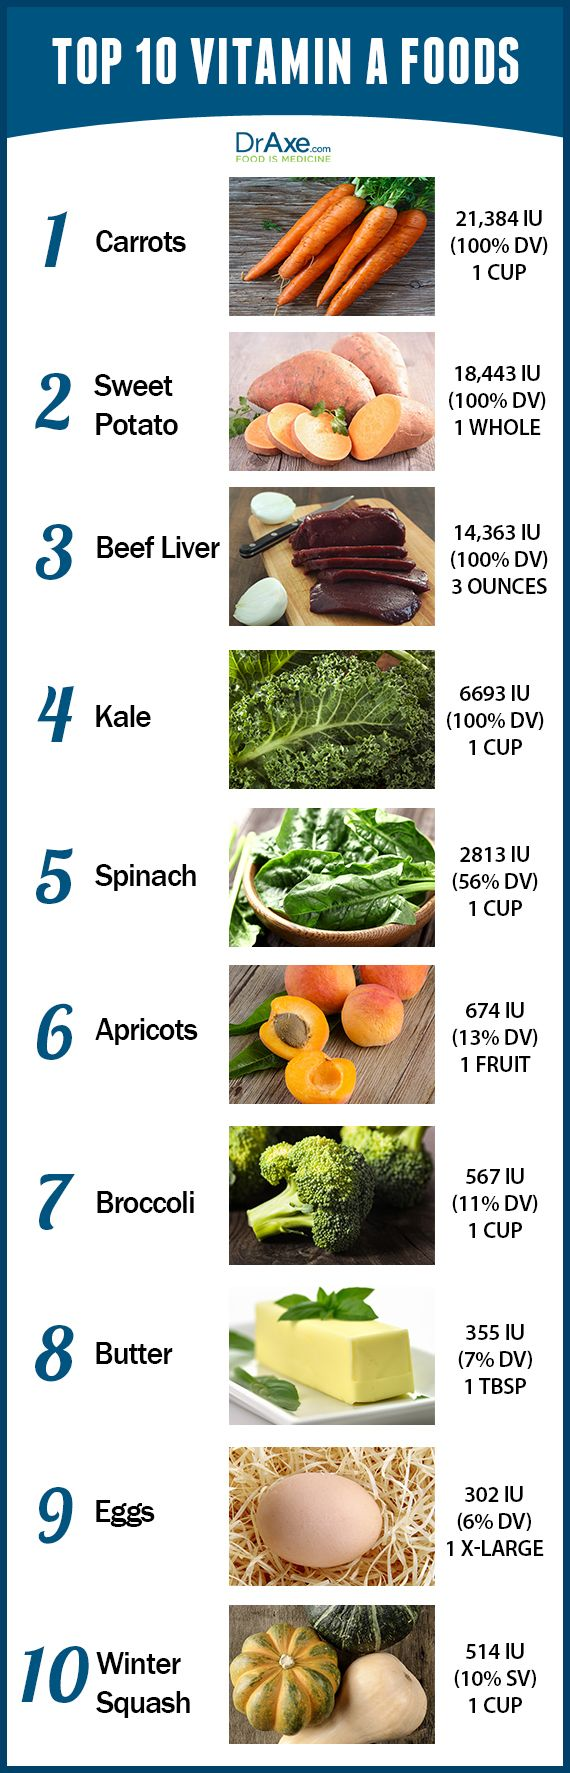 Top 10 Foods to Support Vision & Skin Vitamin a foods, A